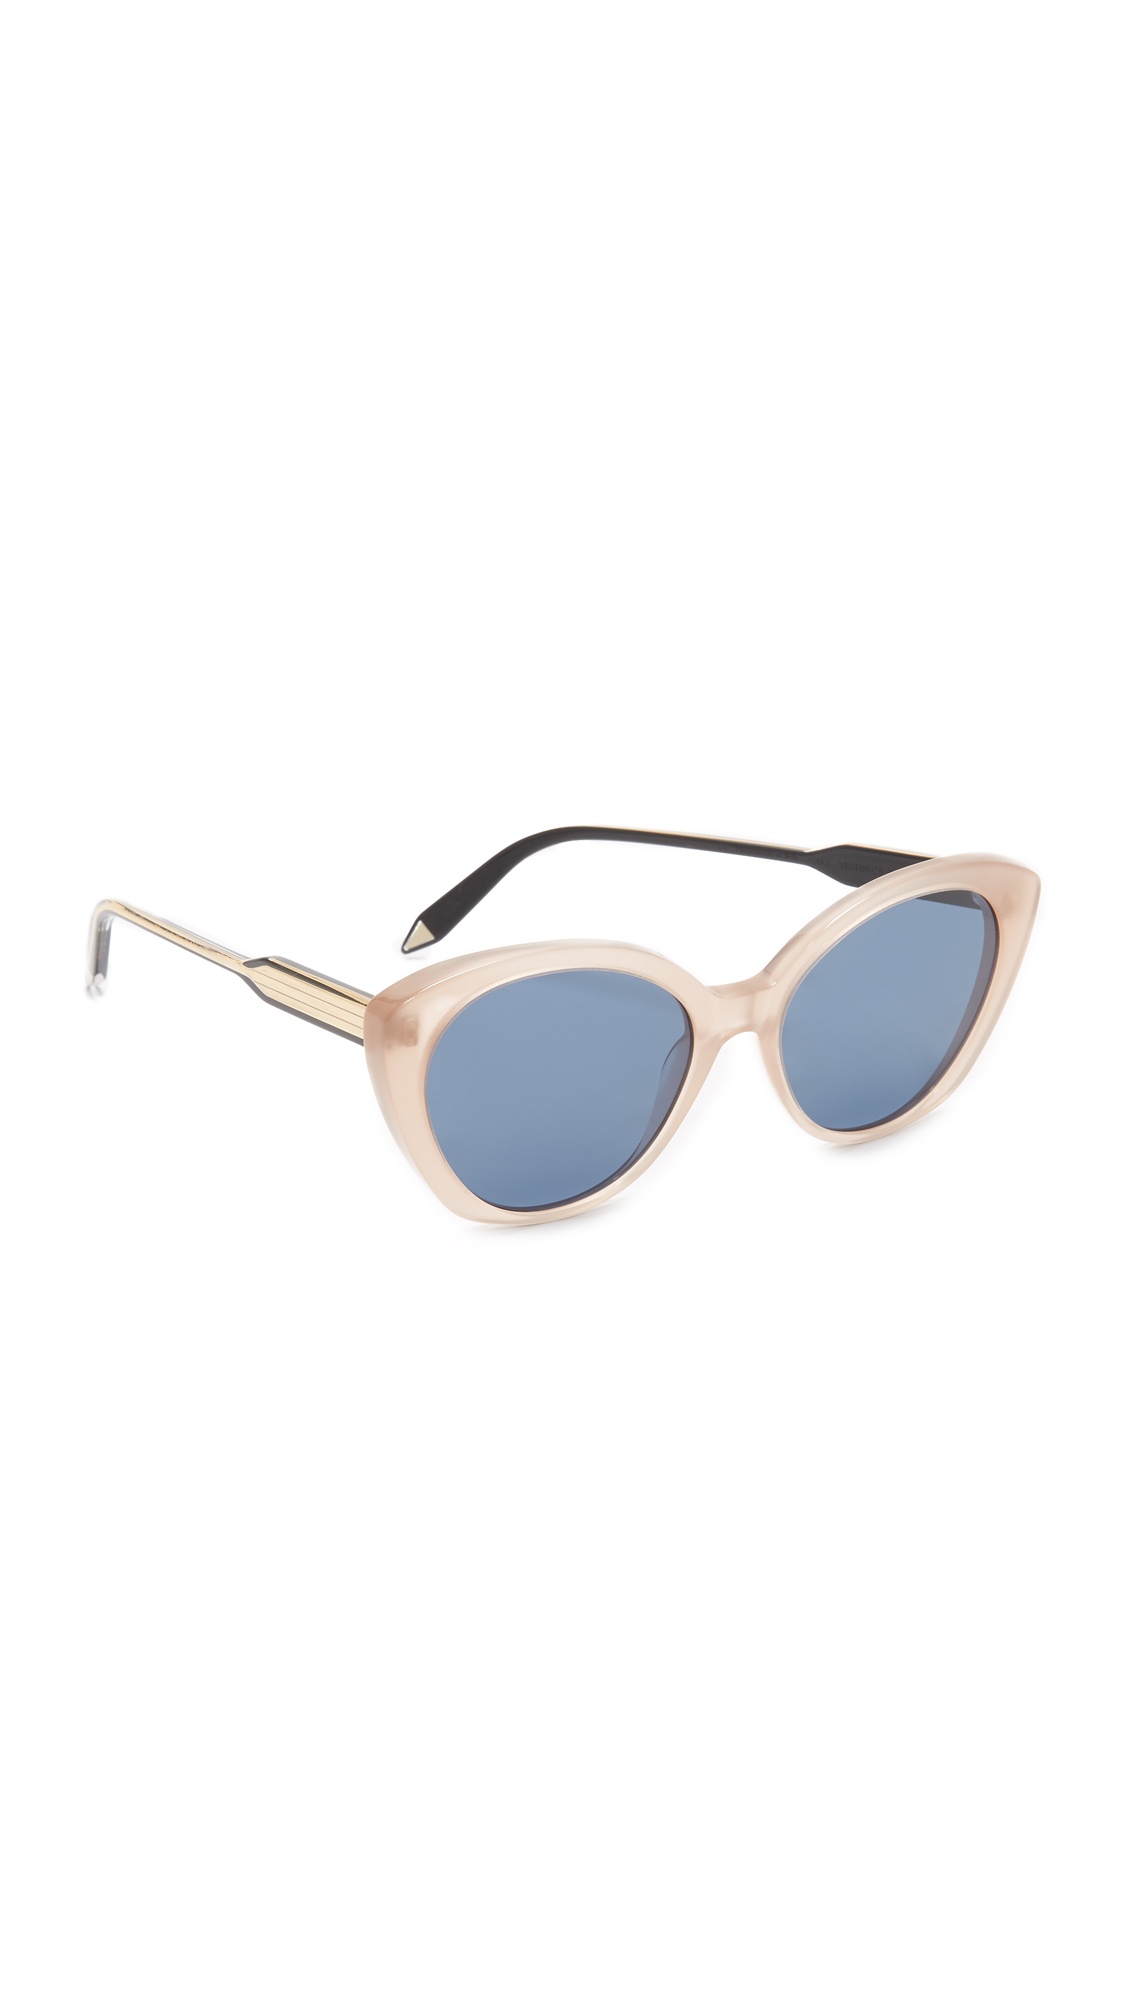 Glossy acetate Victoria Beckham sunglasses styled with metallic accents the arms. Hard case and cleaning cloth included. Cateye frame. Non polarized lenses. Made in Italy. Measurements Width: 5.75in / 14.5cm Height: 2.25in / 5.5cm Lens Width: 52mm. Available